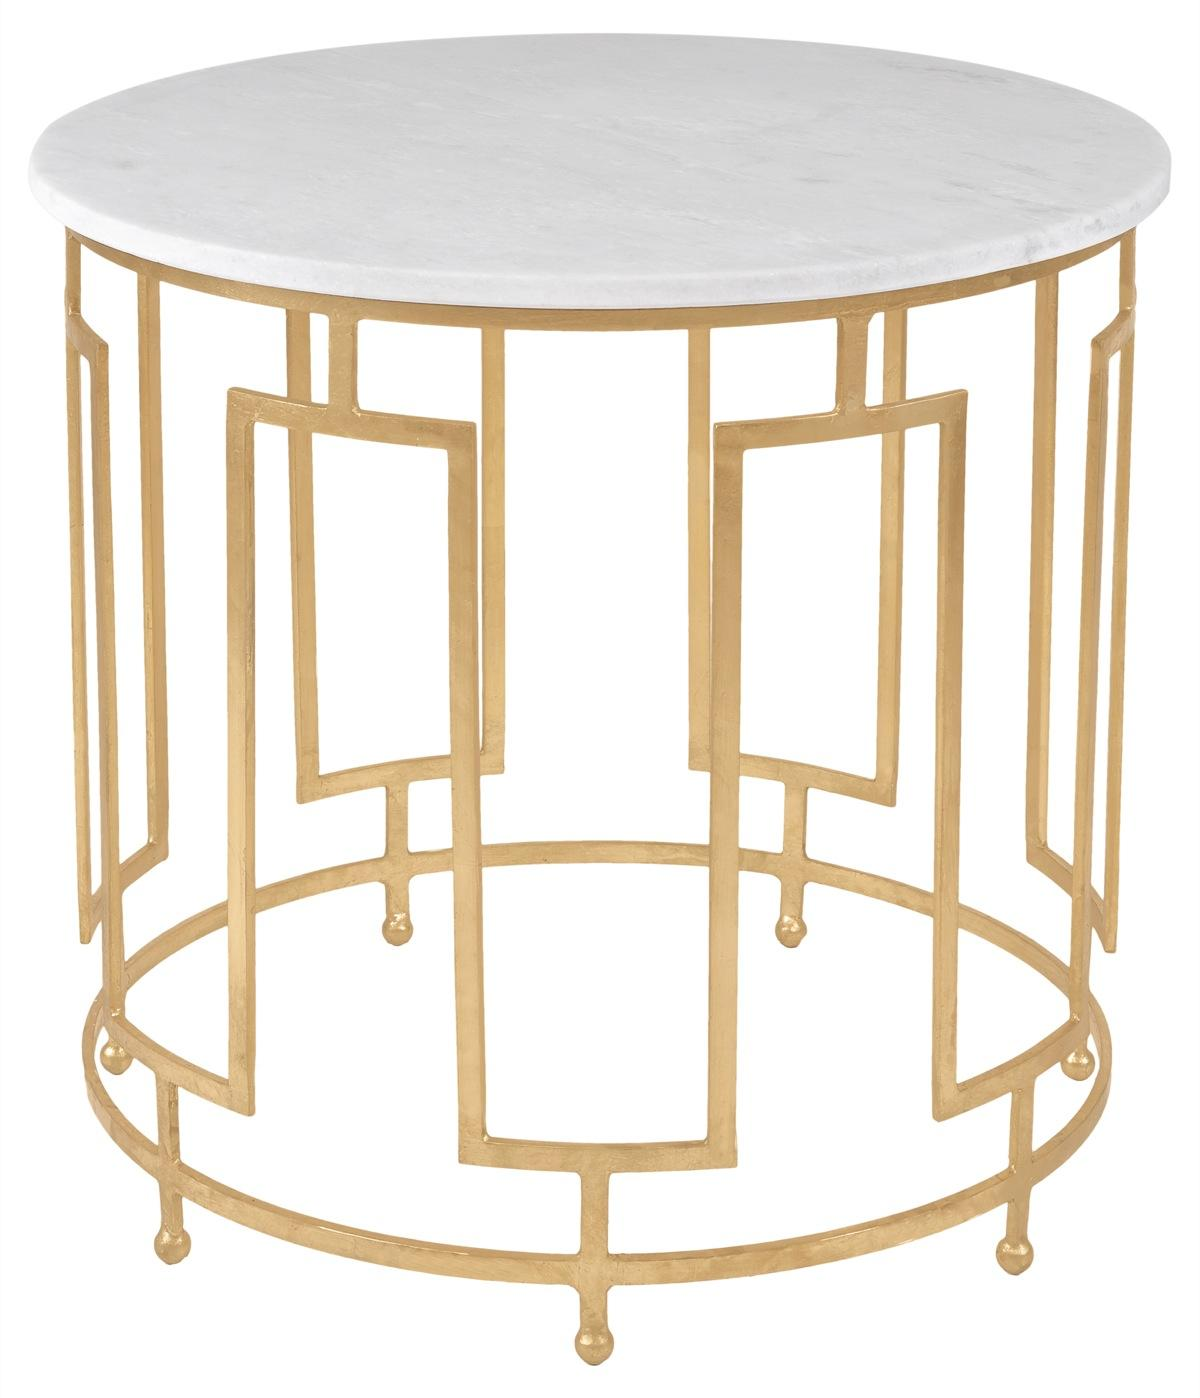 safavieh front gold accent table solid wood sofa small contemporary end tables harrietta piece set pine pier one modern white coffee light blue chair coastal floor lamps